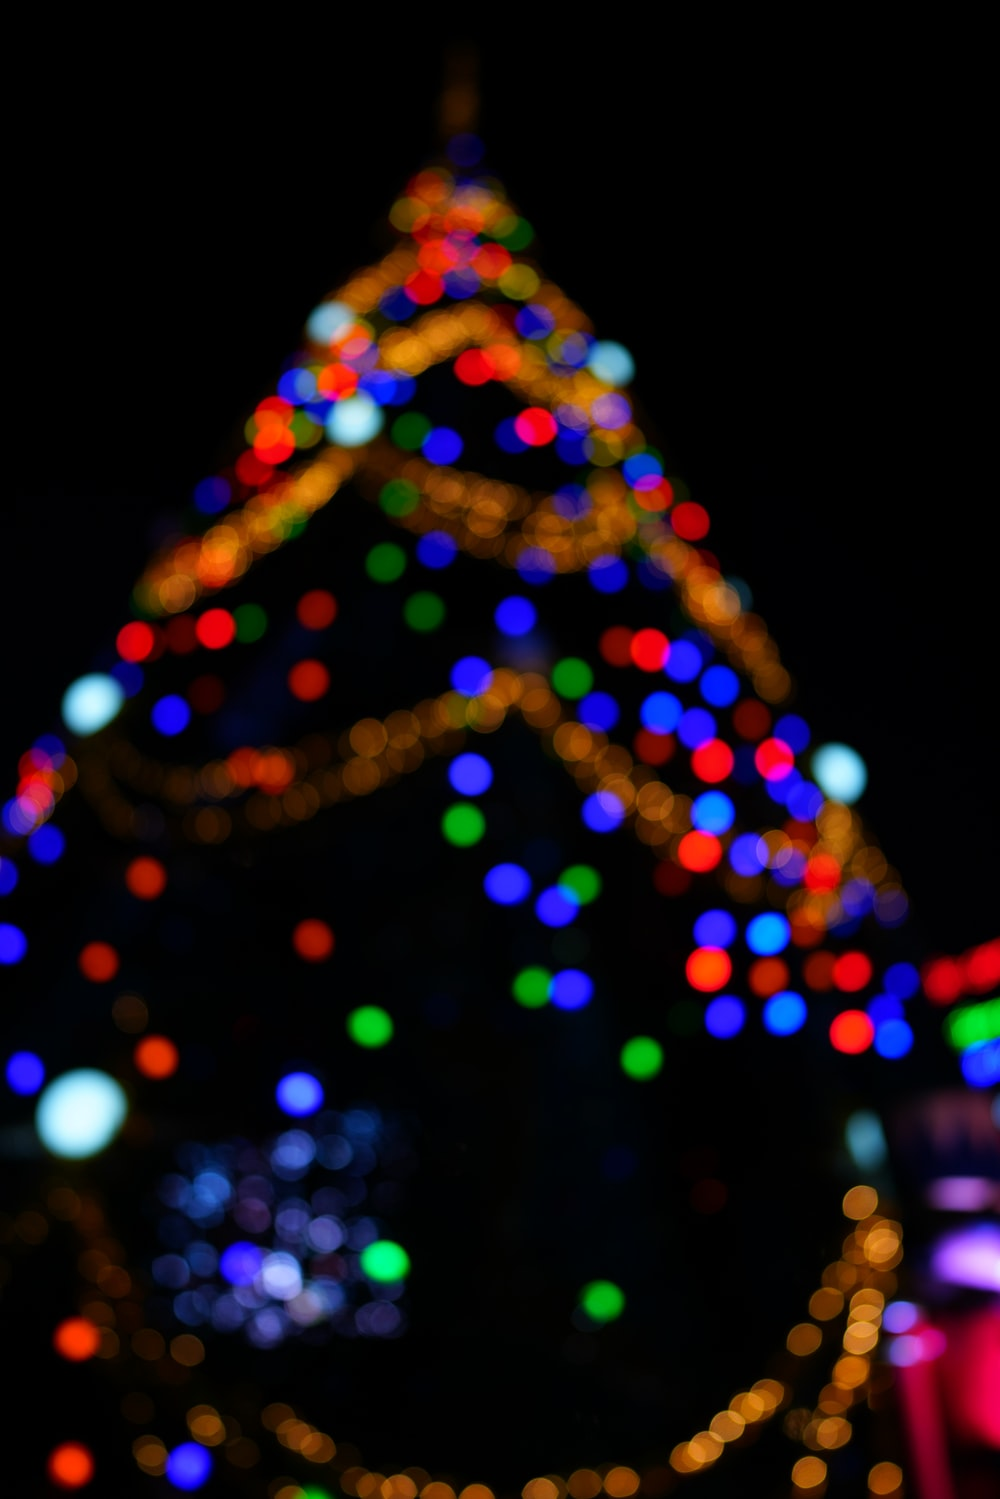 selective focus photo of Christmas tree with turned-on string lights